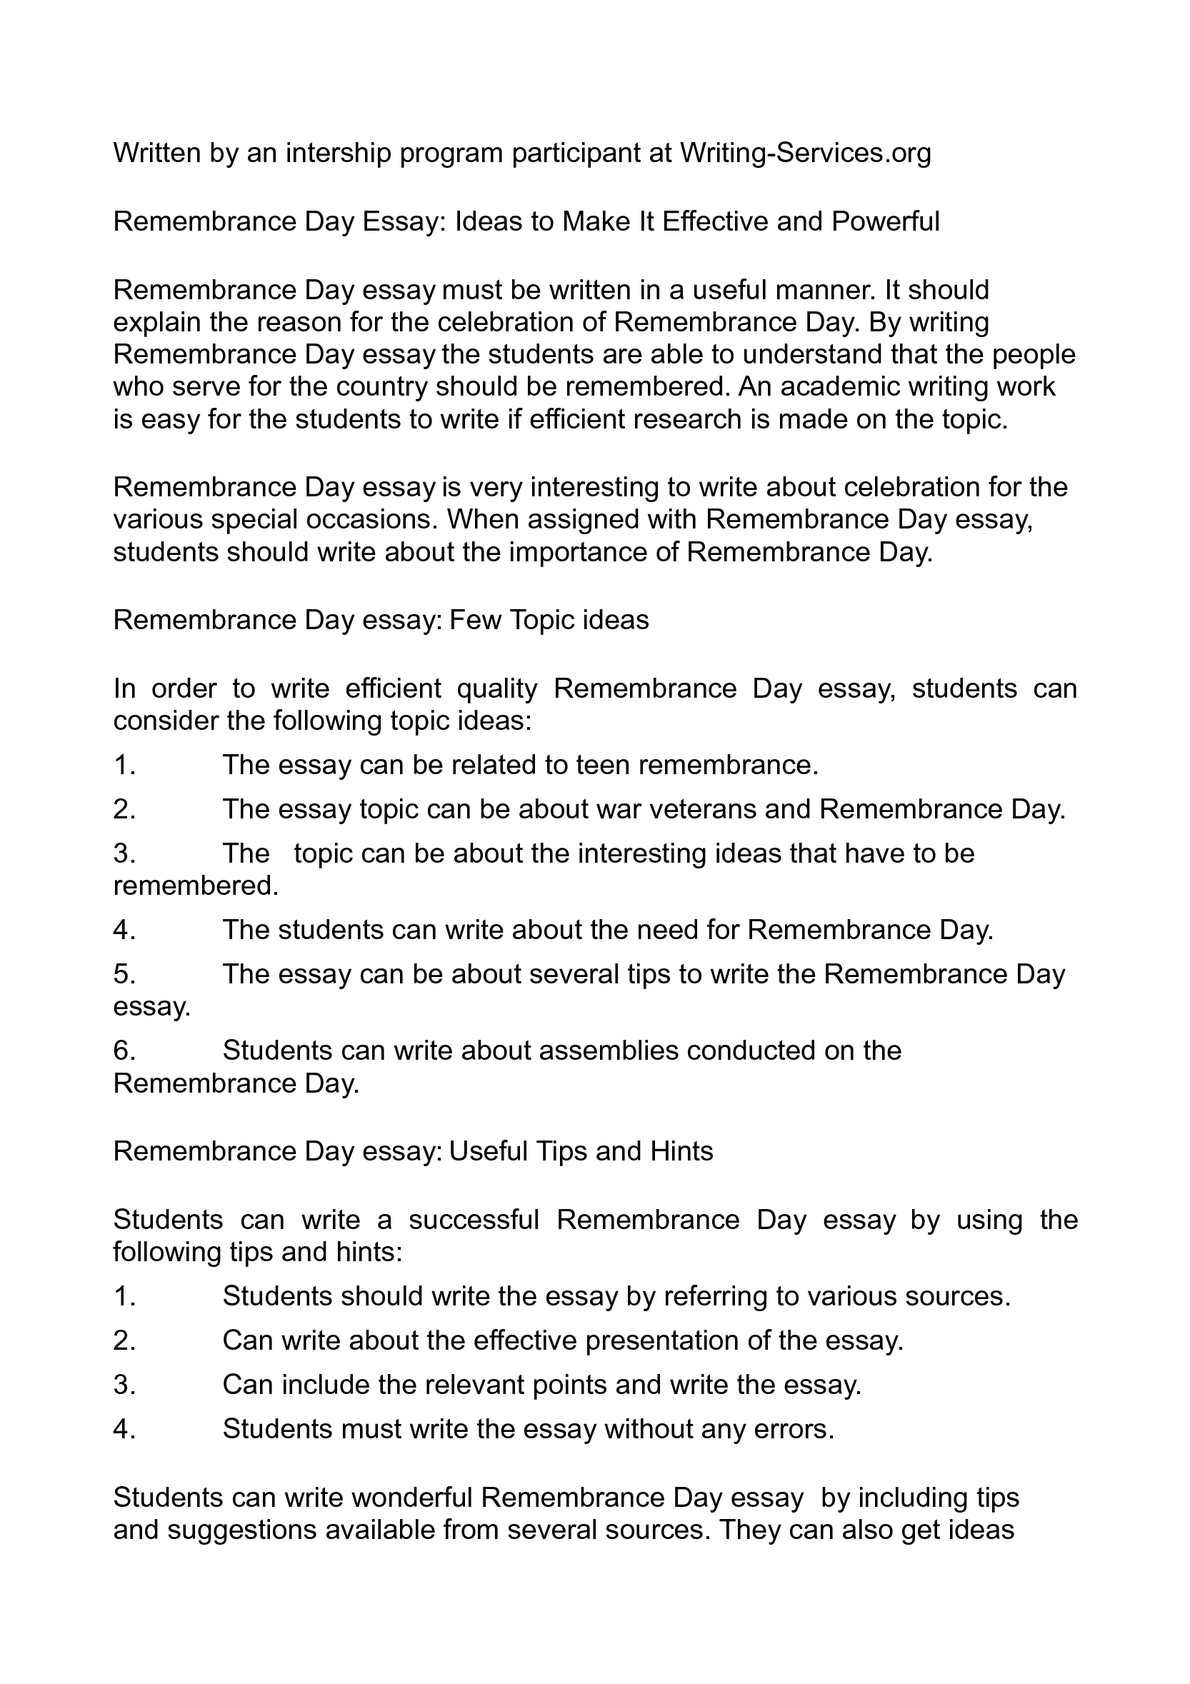 remembrance day essay remembrance day essay final draft bischoff calamatildecopyo remembrance day essay ideas to make it effective and calamatildecopyo remembrance